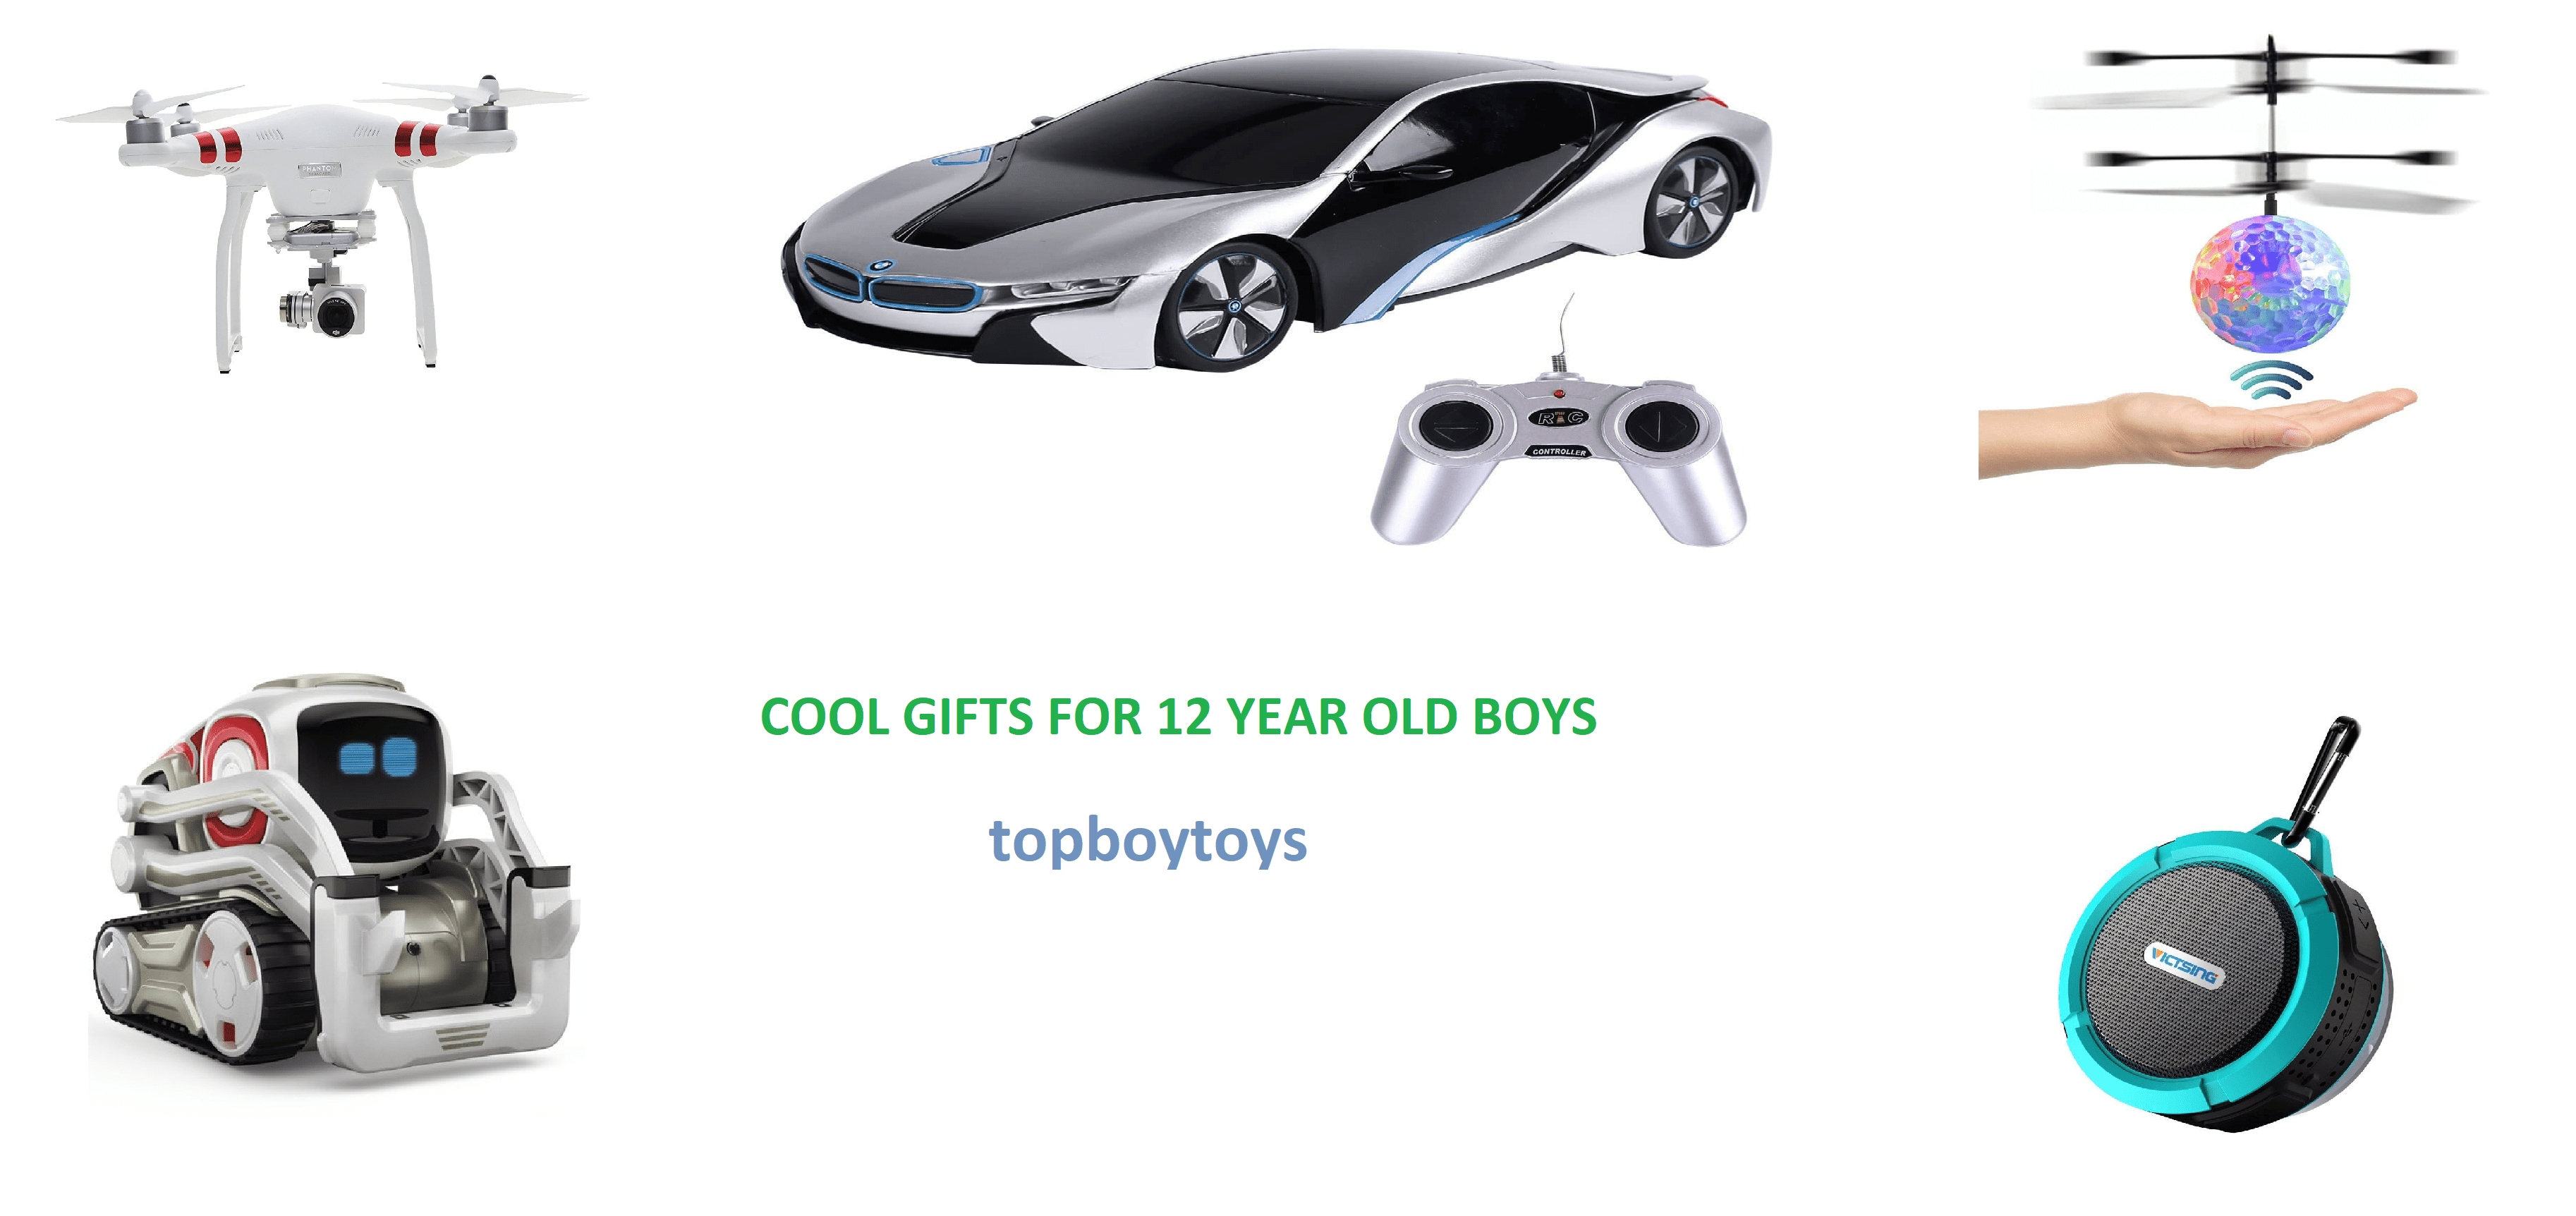 10 Beautiful Gift Ideas 12 Year Old Boy which is best cool gifts for 12 year old boys 2017 18 usa 1